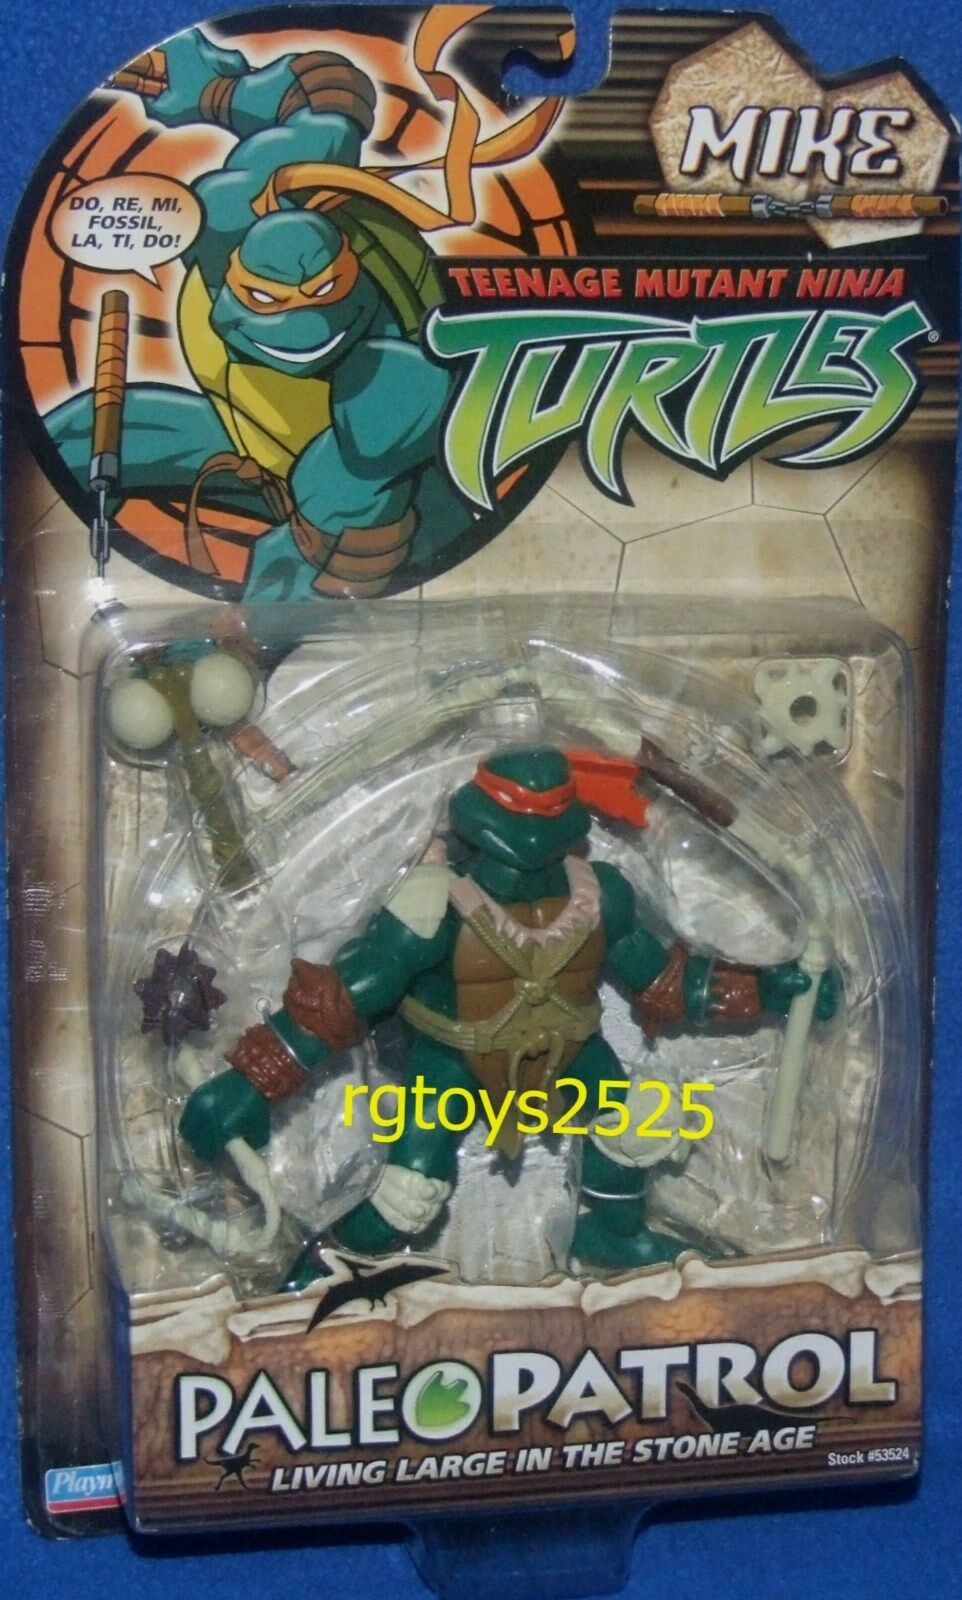 Teenage Mutant Ninja Turtles 5  Paleo Patrol Mike Michelangelo New Factory Seal